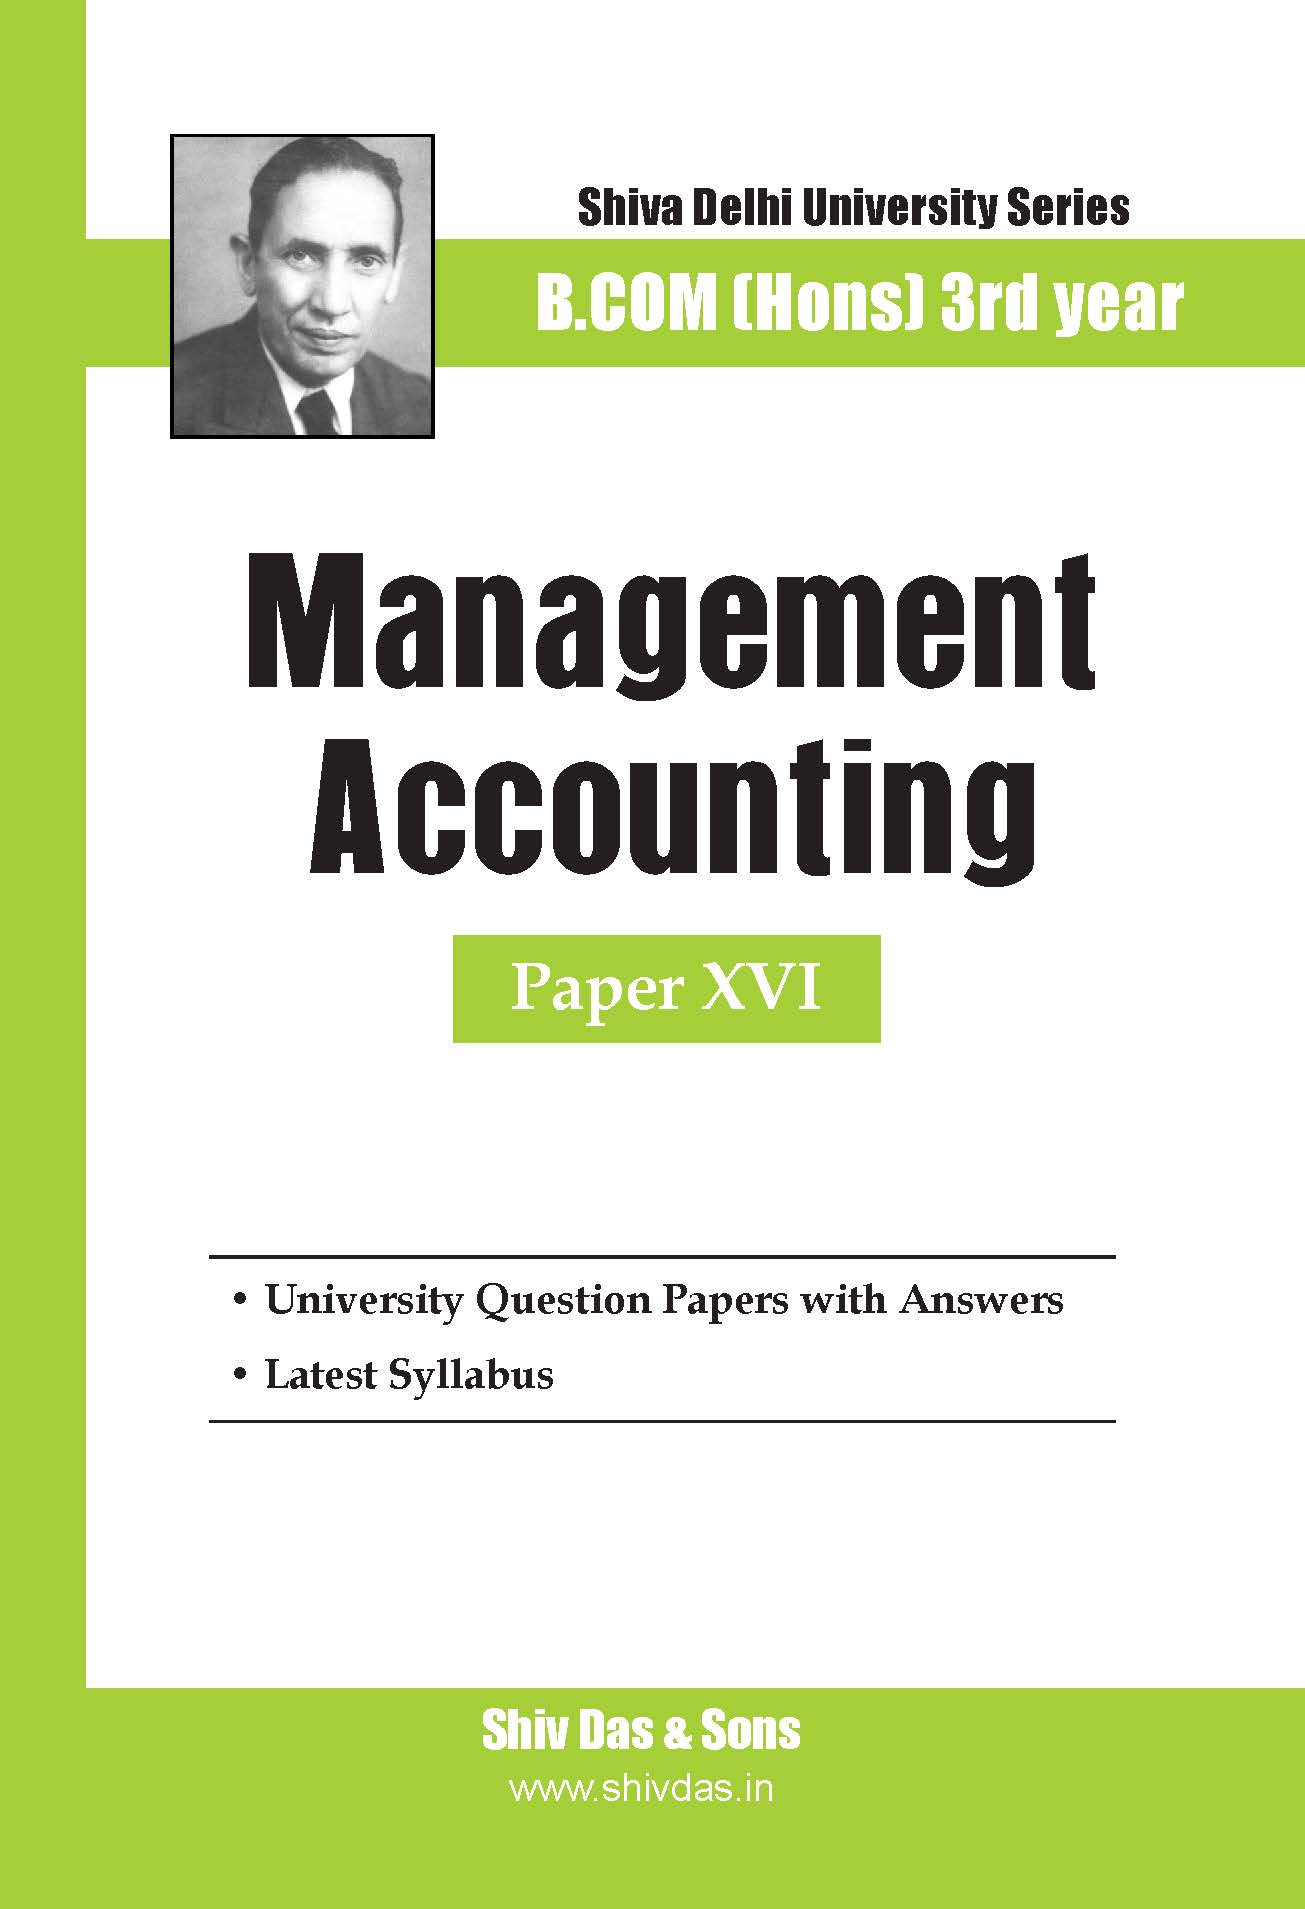 Management Accounting for B.Com Hons SOL/External 3rd Year